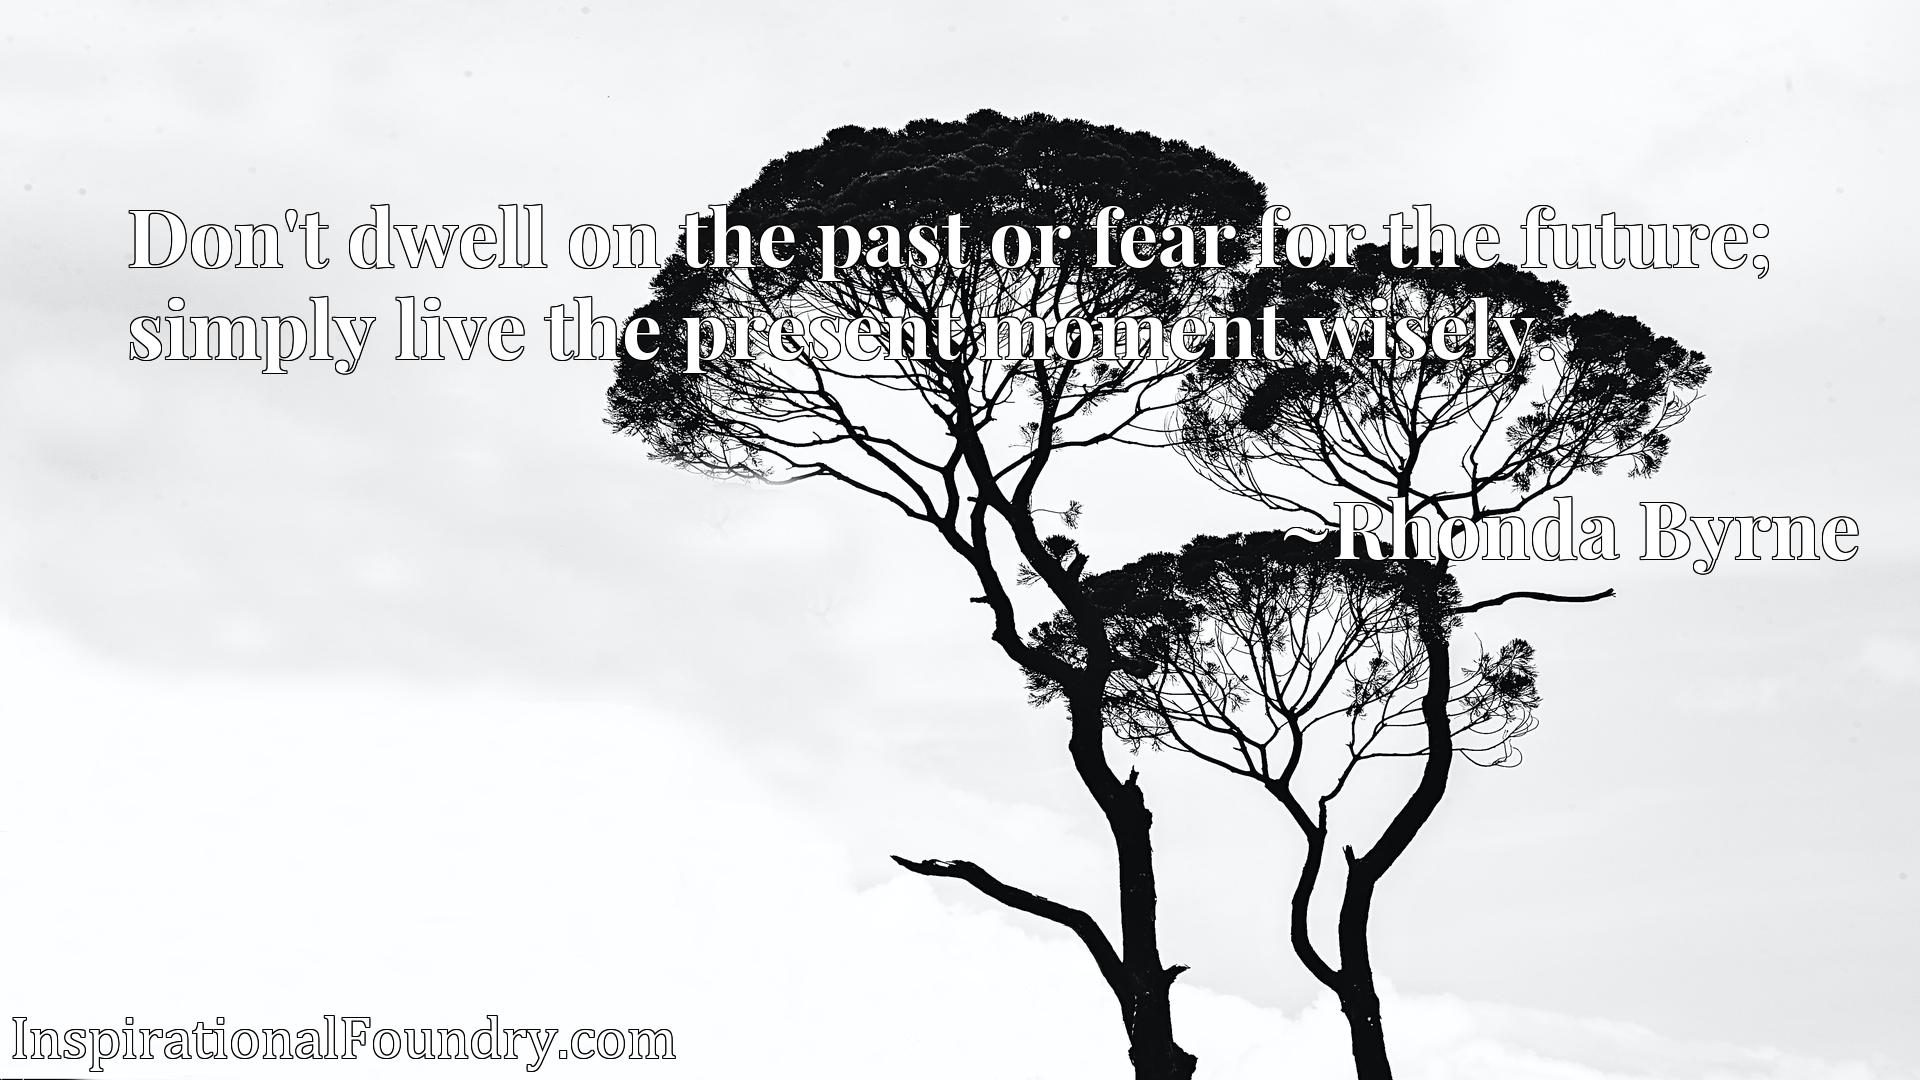 Don't dwell on the past or fear for the future; simply live the present moment wisely.